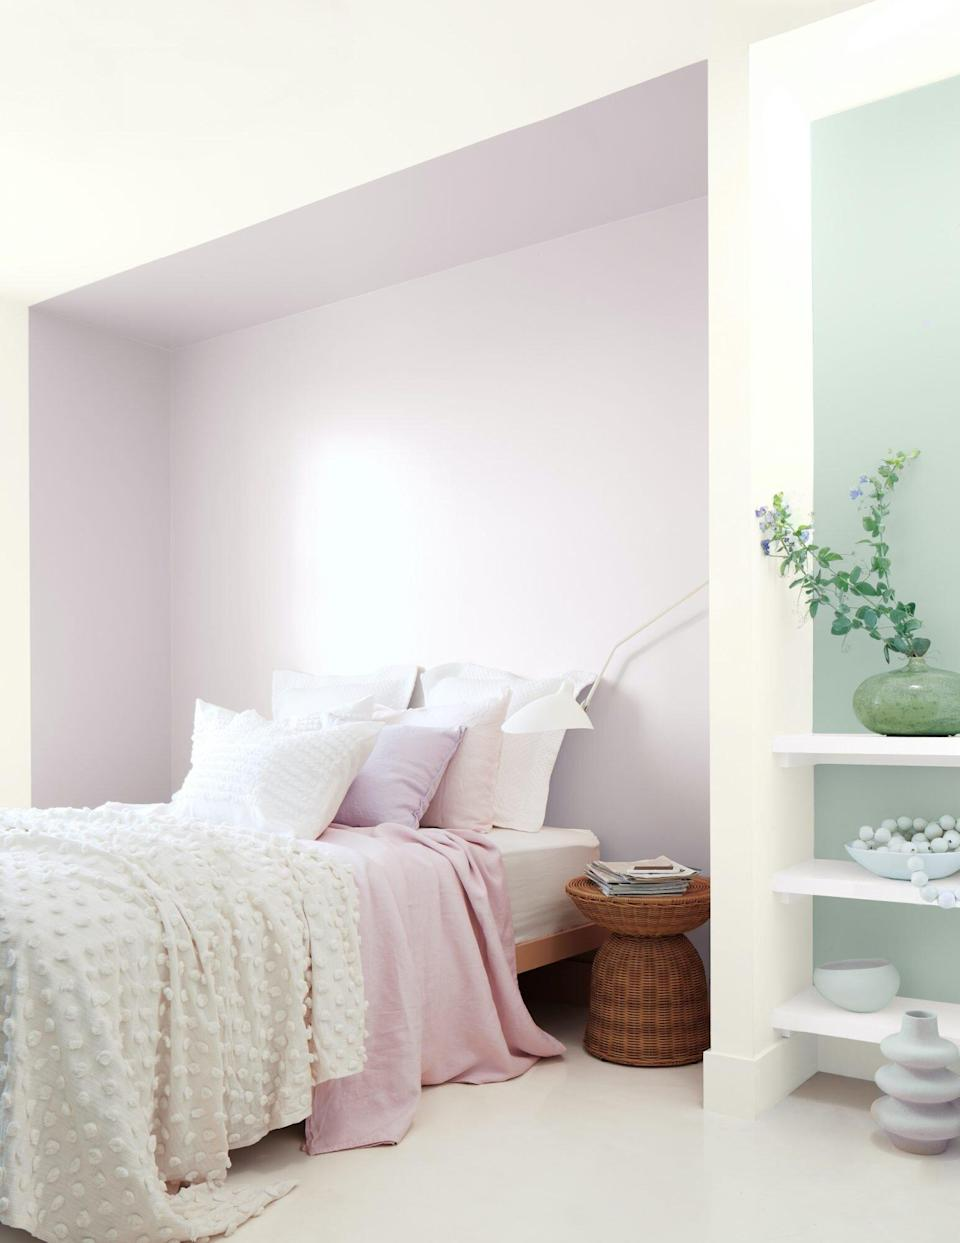 sage green and lavender paint in bedroom